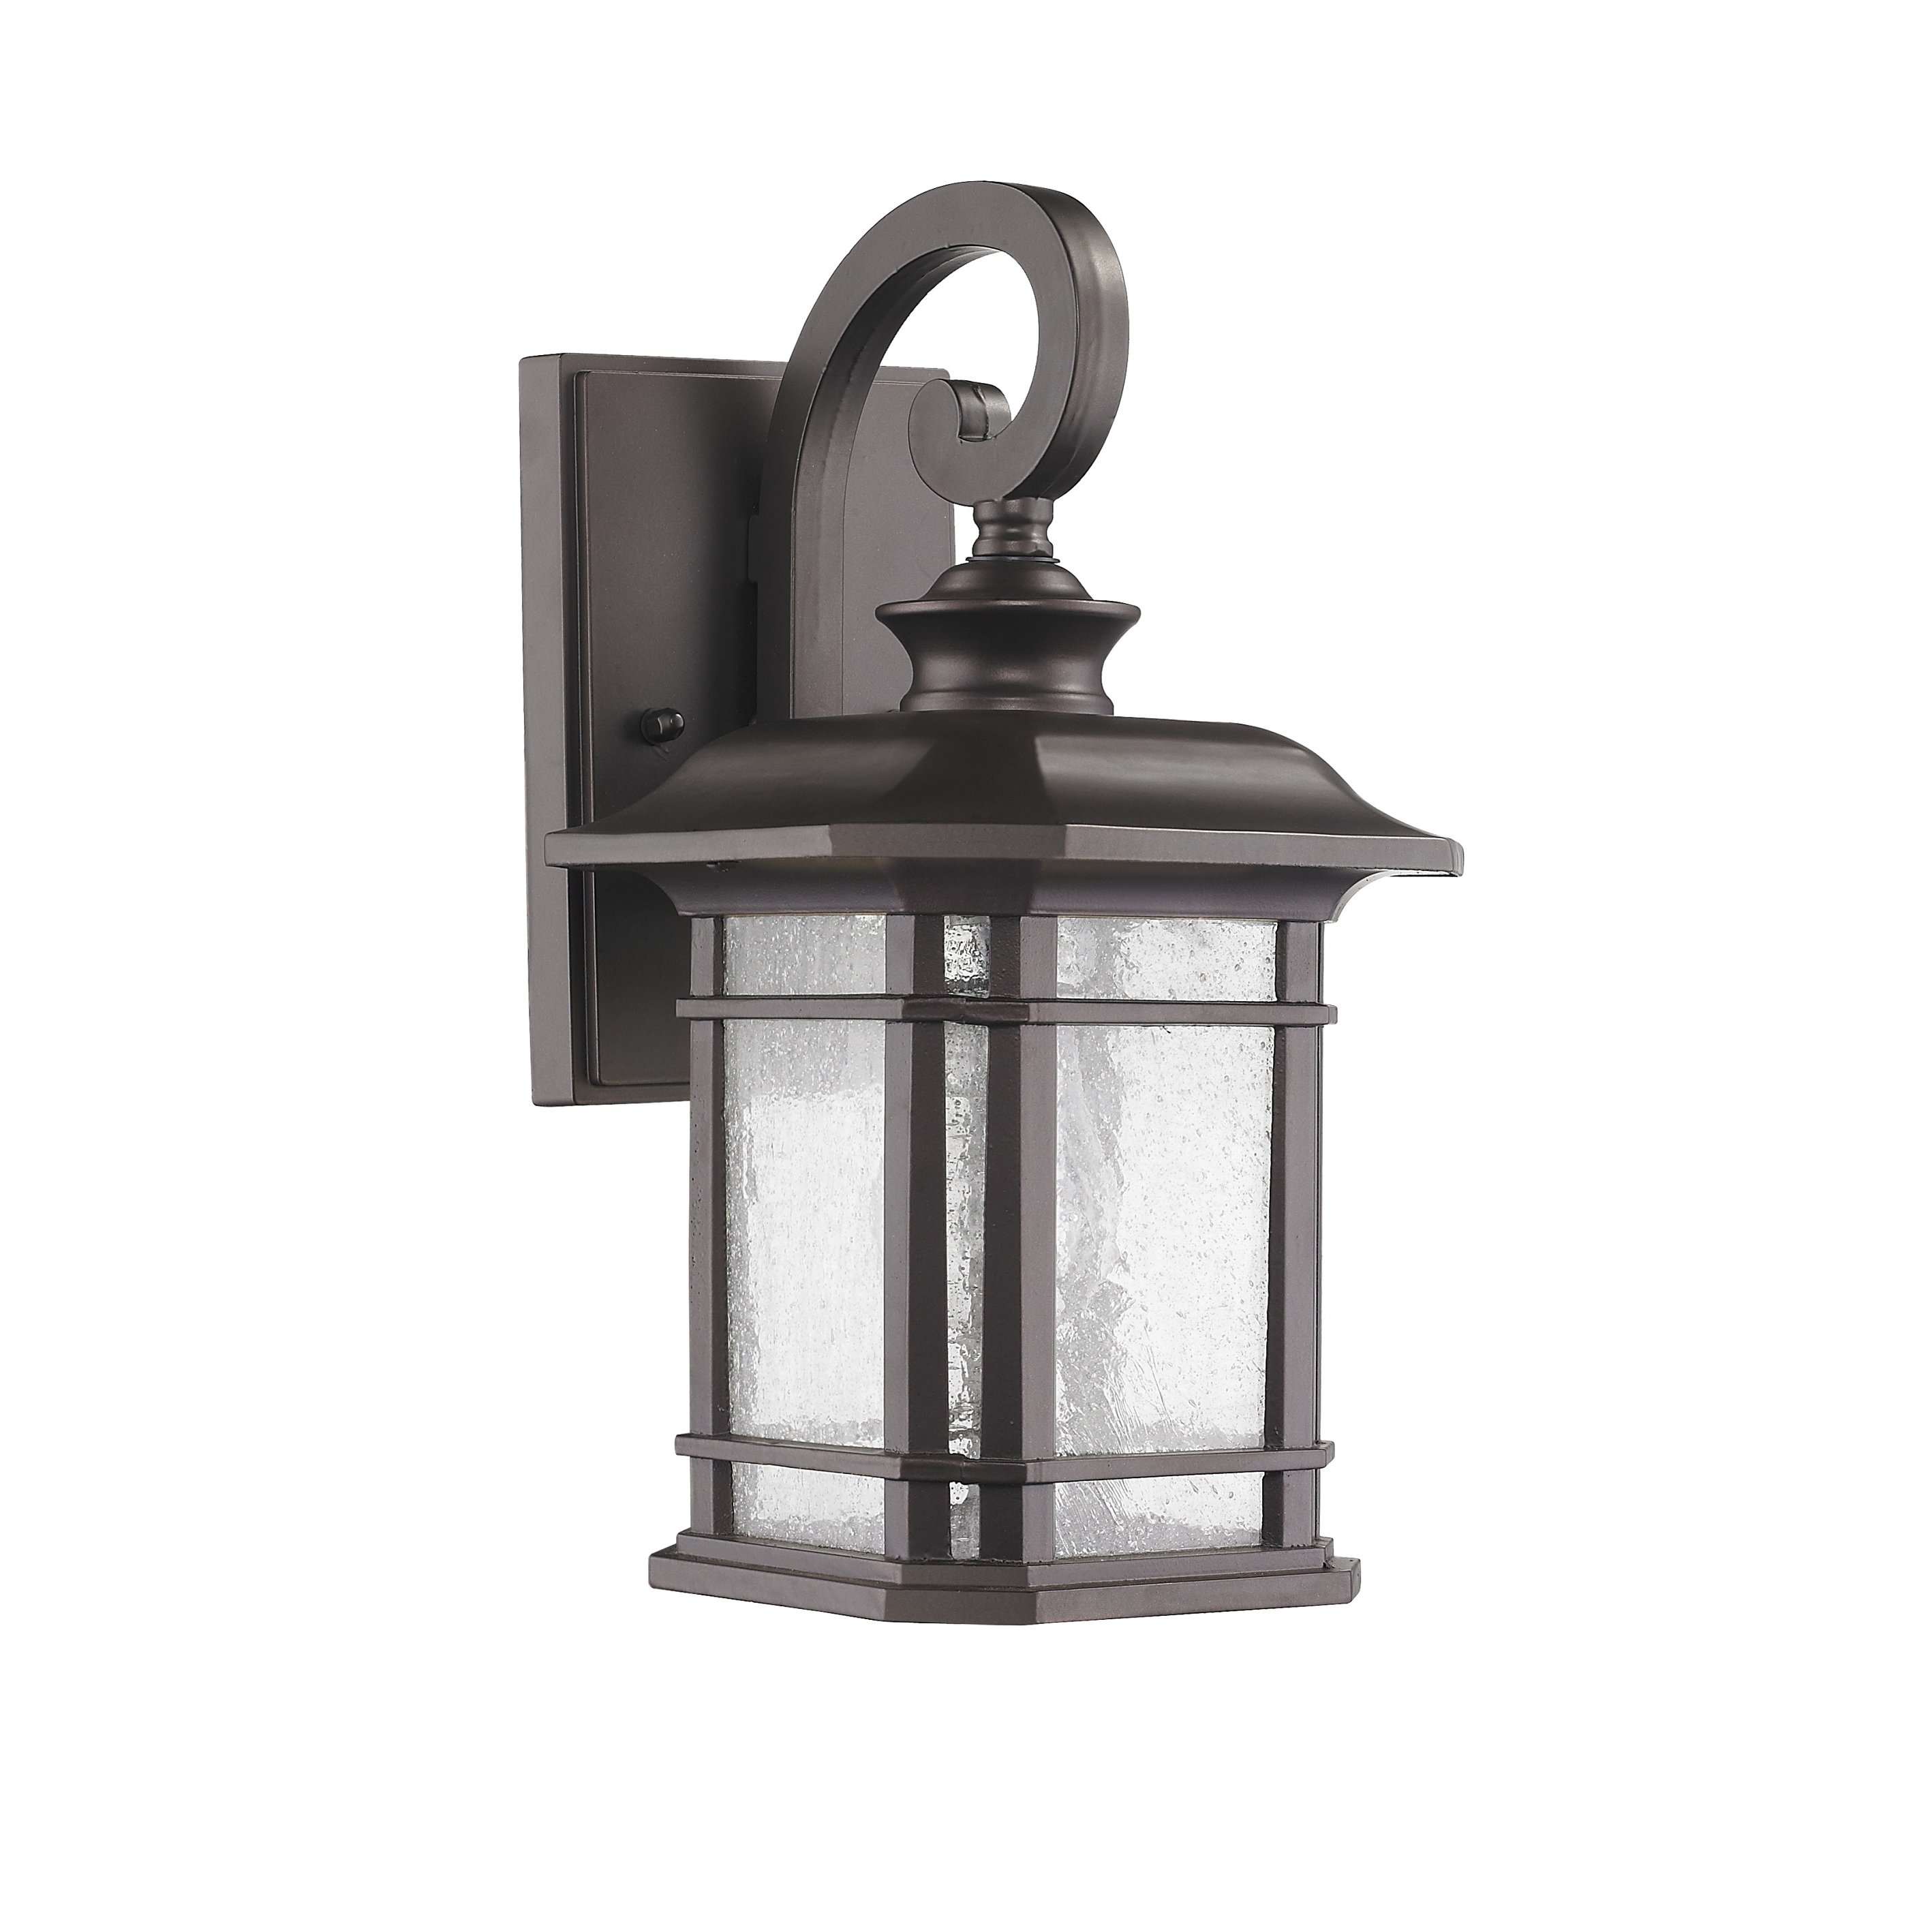 Best Outdoor Wall Lighting Youu0027ll Love | Wayfair outdoor wall lighting fixtures